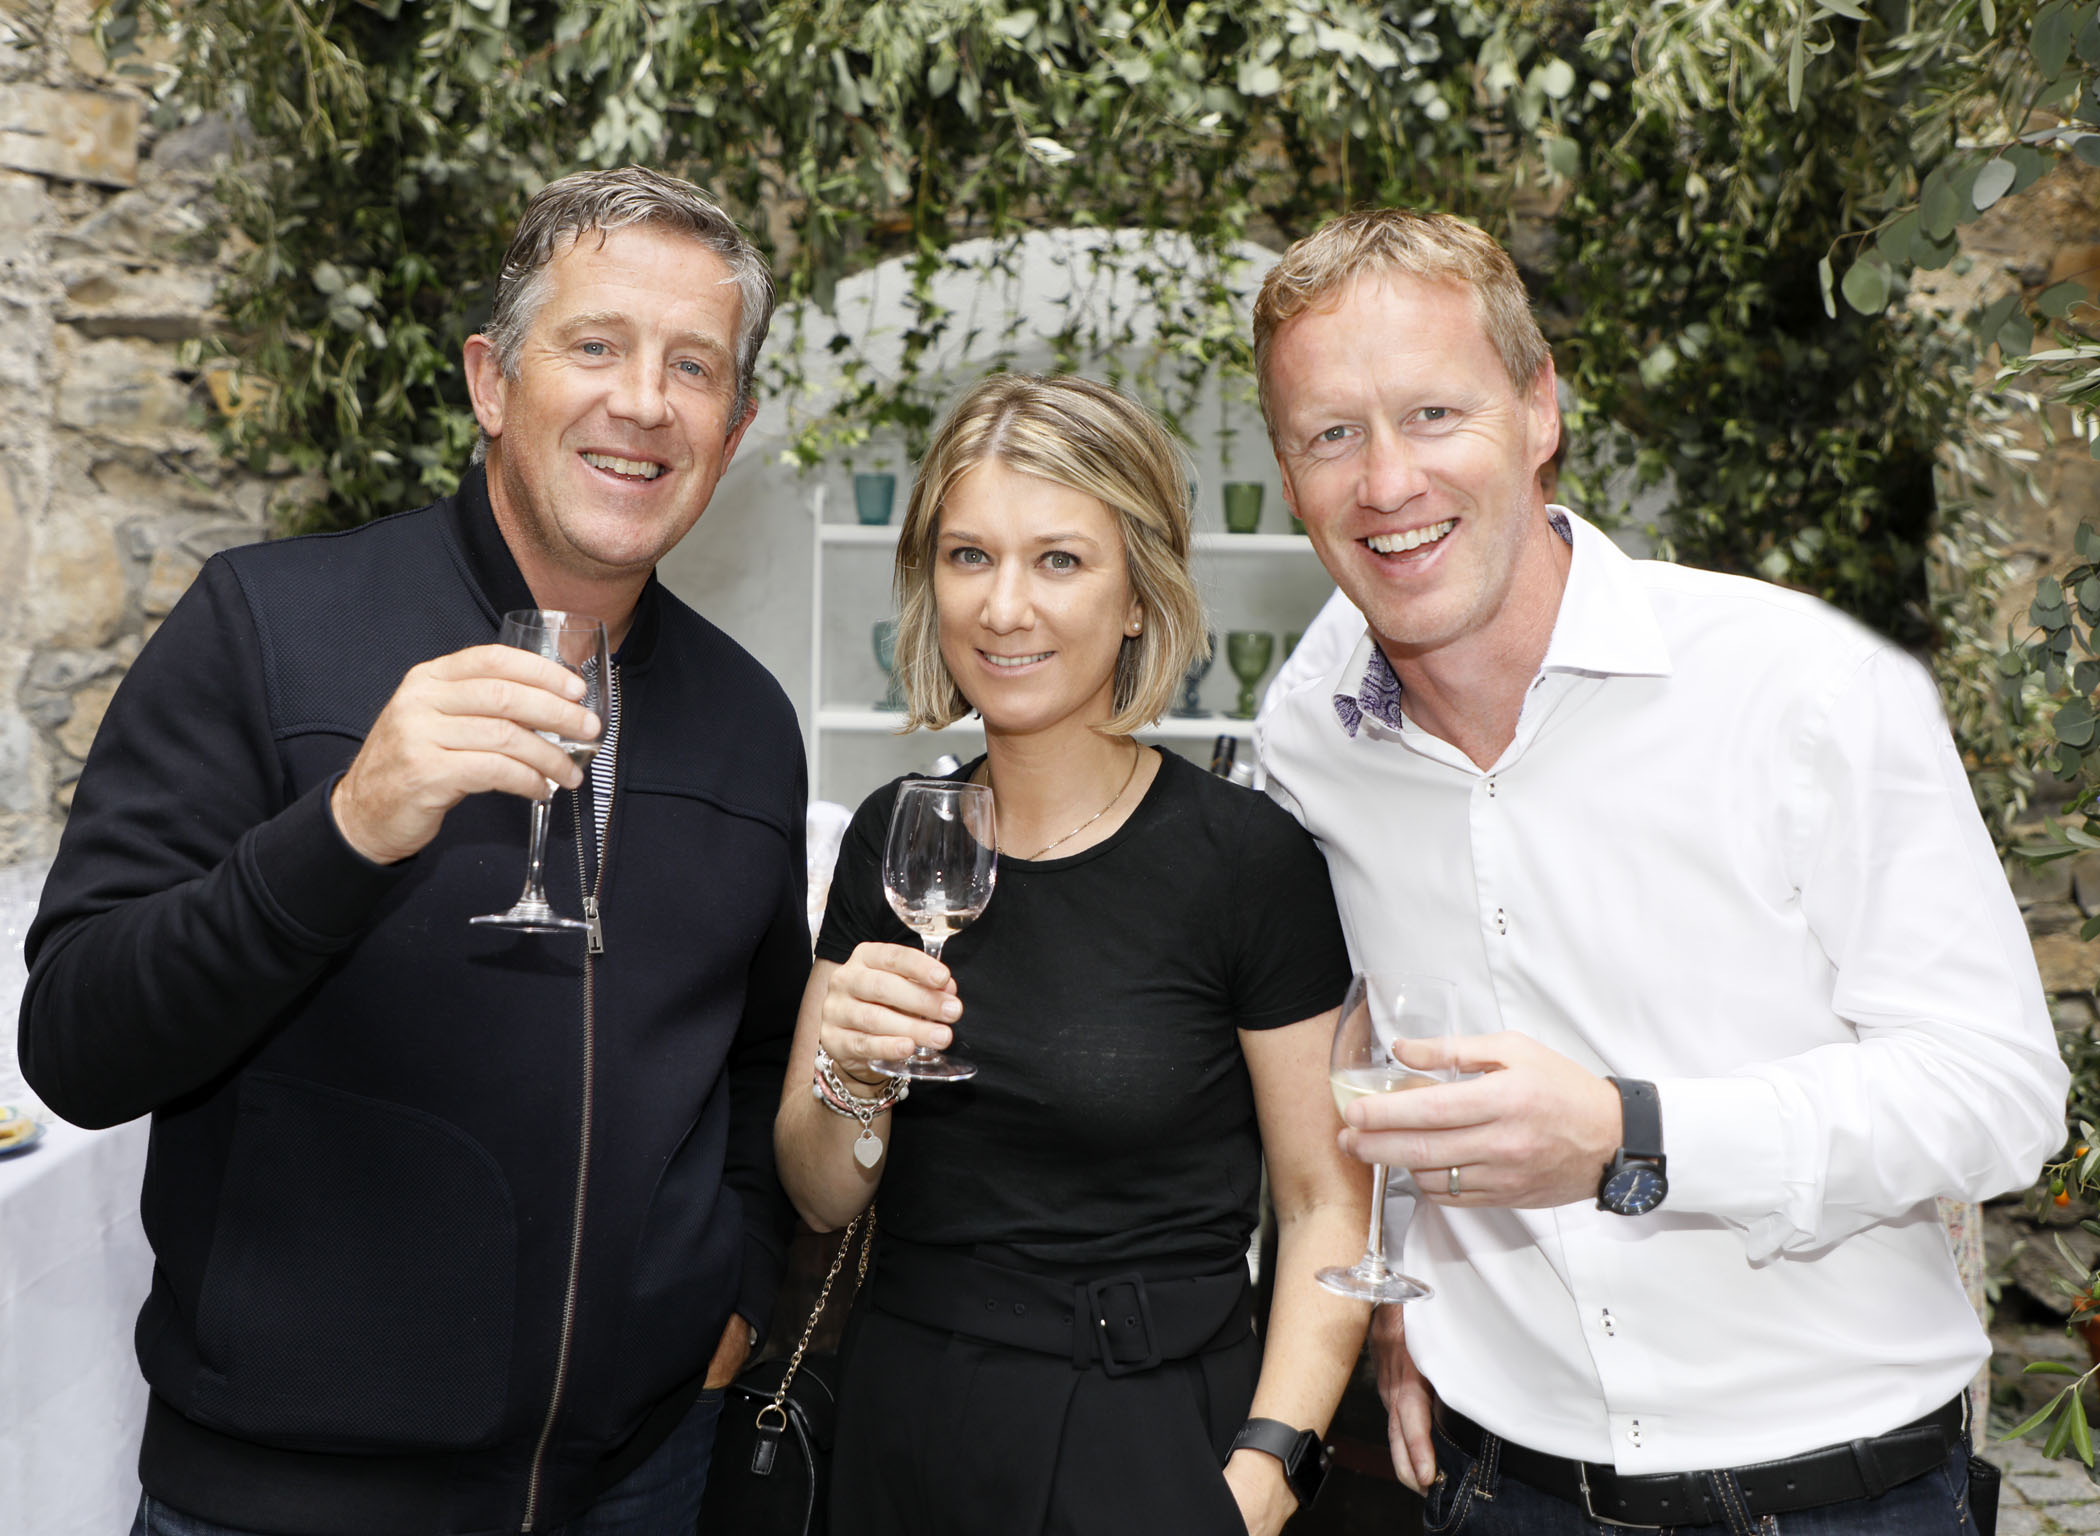 Diarmuid McHugh, Niamh Skally and John Bowler at the Centra 'Wines We Love' event in Dublin. Photo: Kieran Harnett